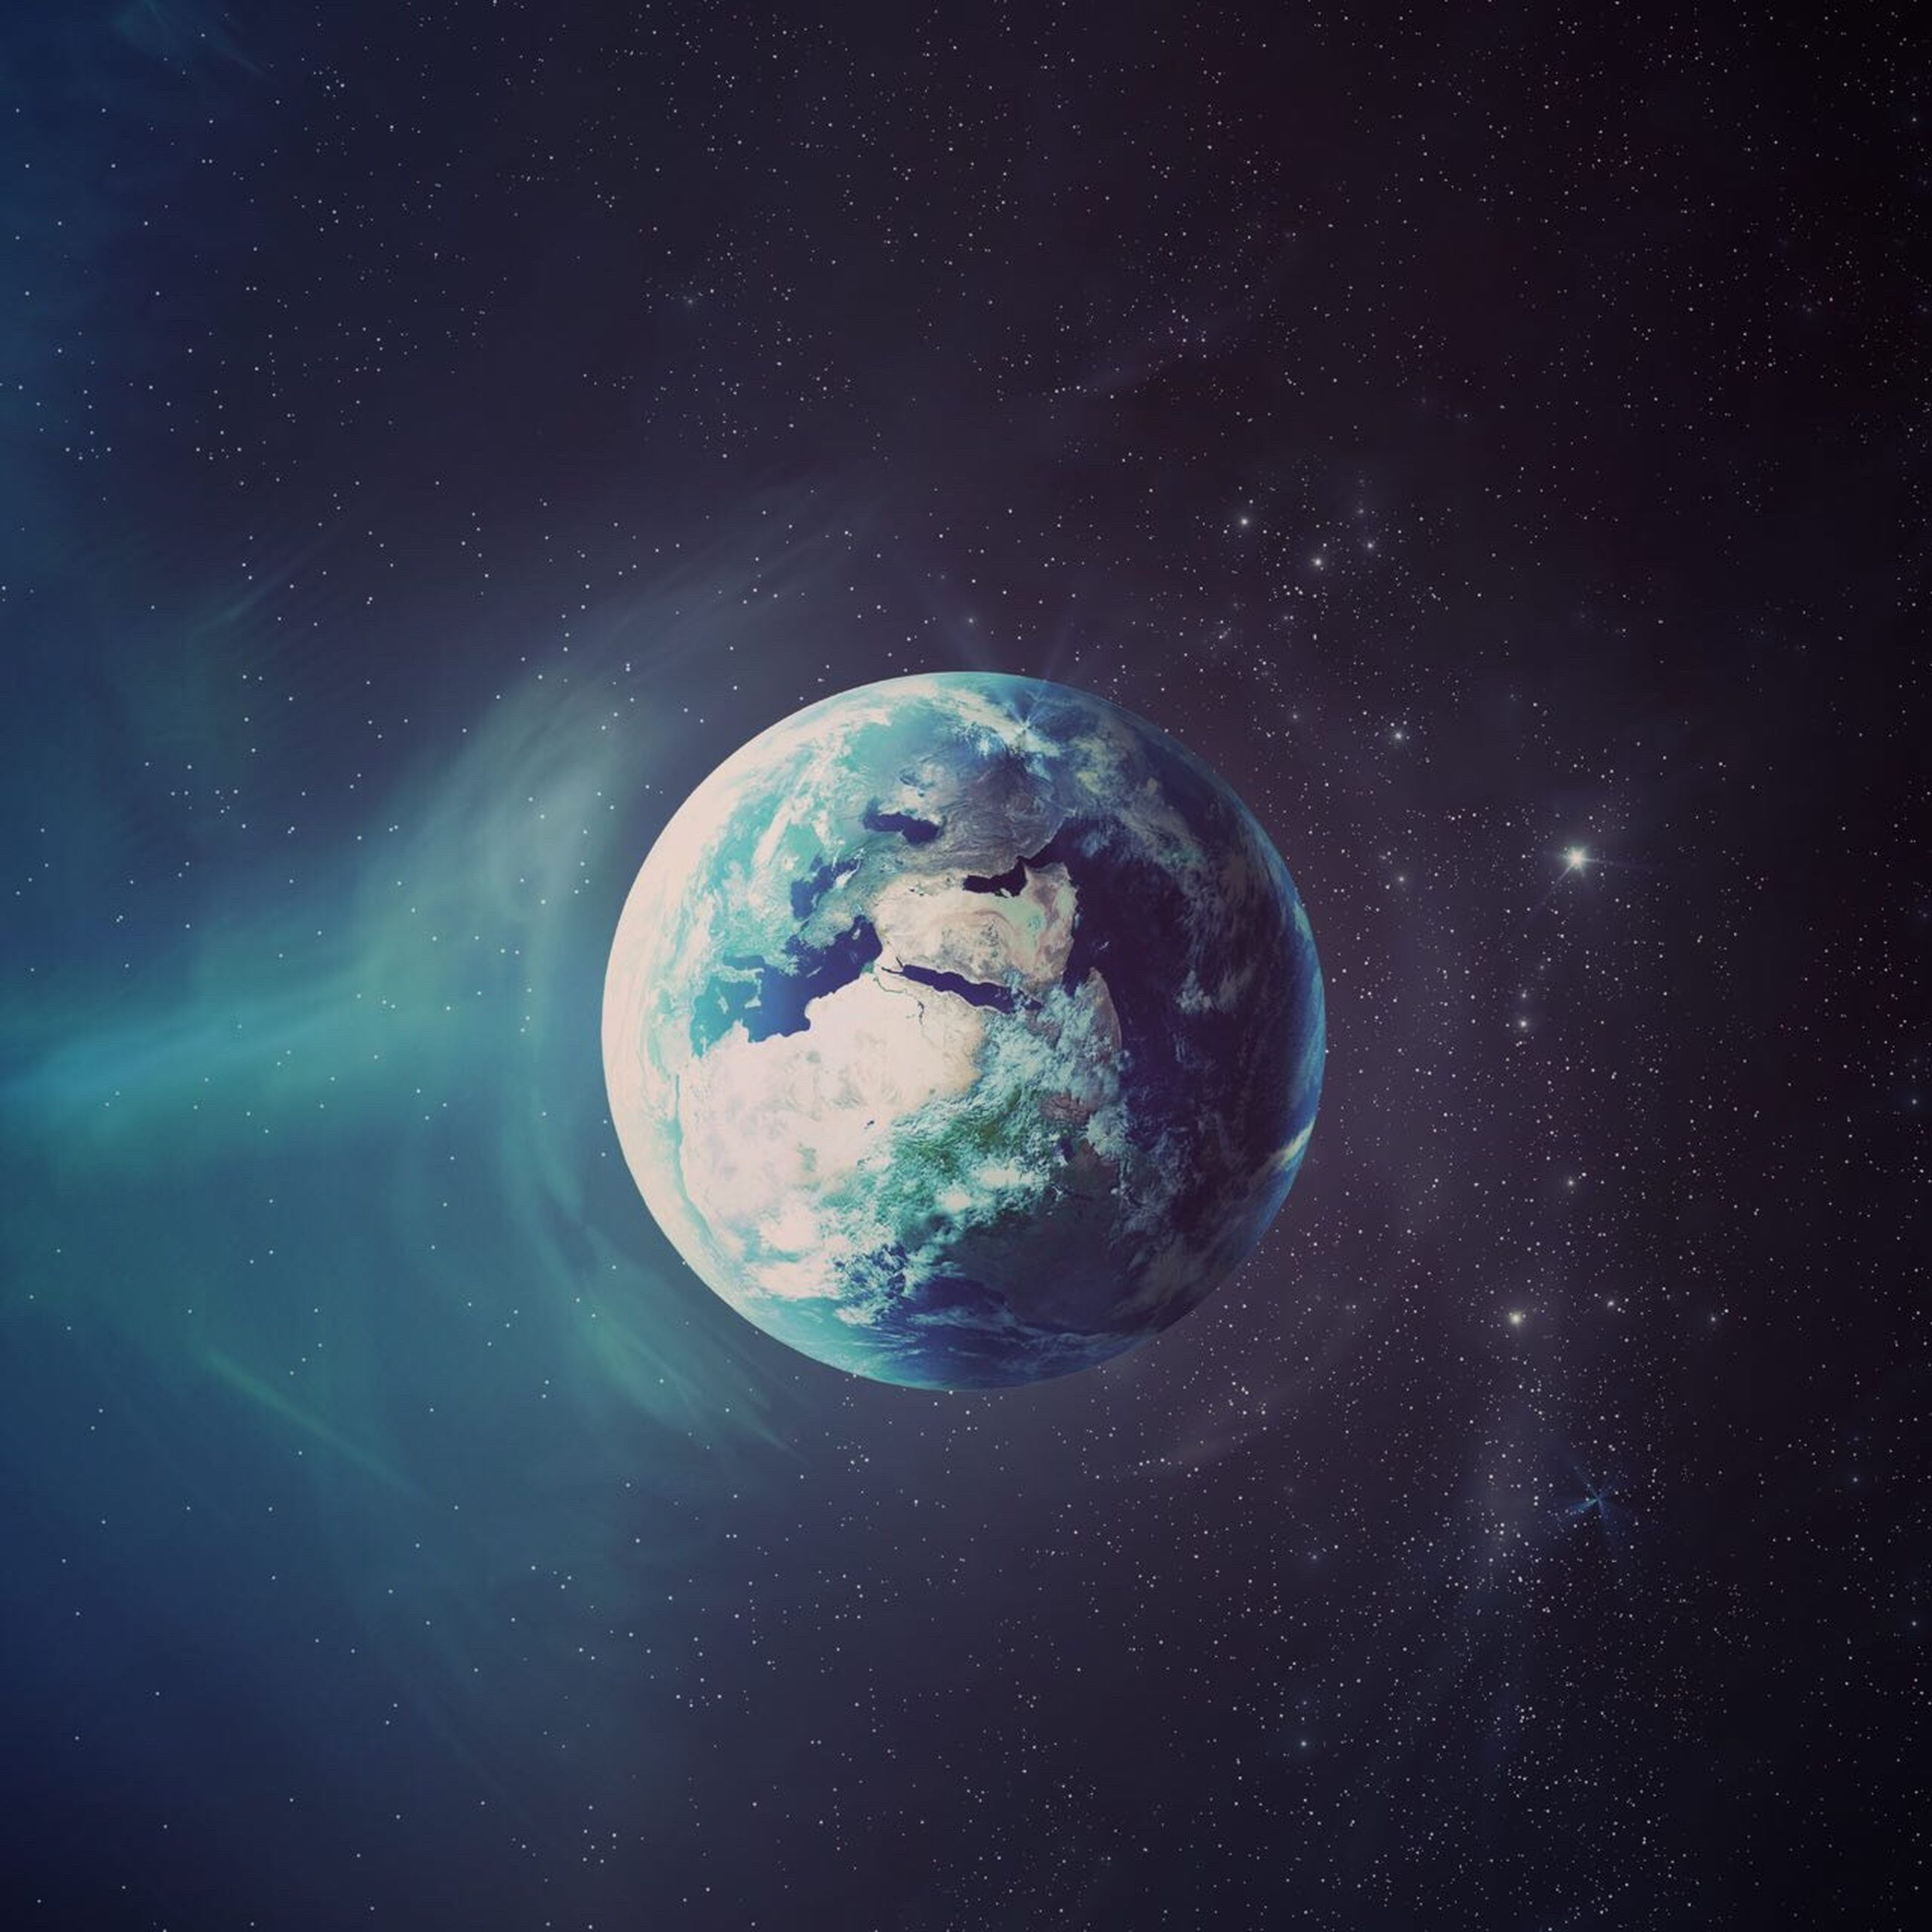 planet earth, globe - man made object, planet - space, space, sphere, environment, astronomy, nature, star - space, world map, satellite view, science, no people, solar system, beauty in nature, sky, day